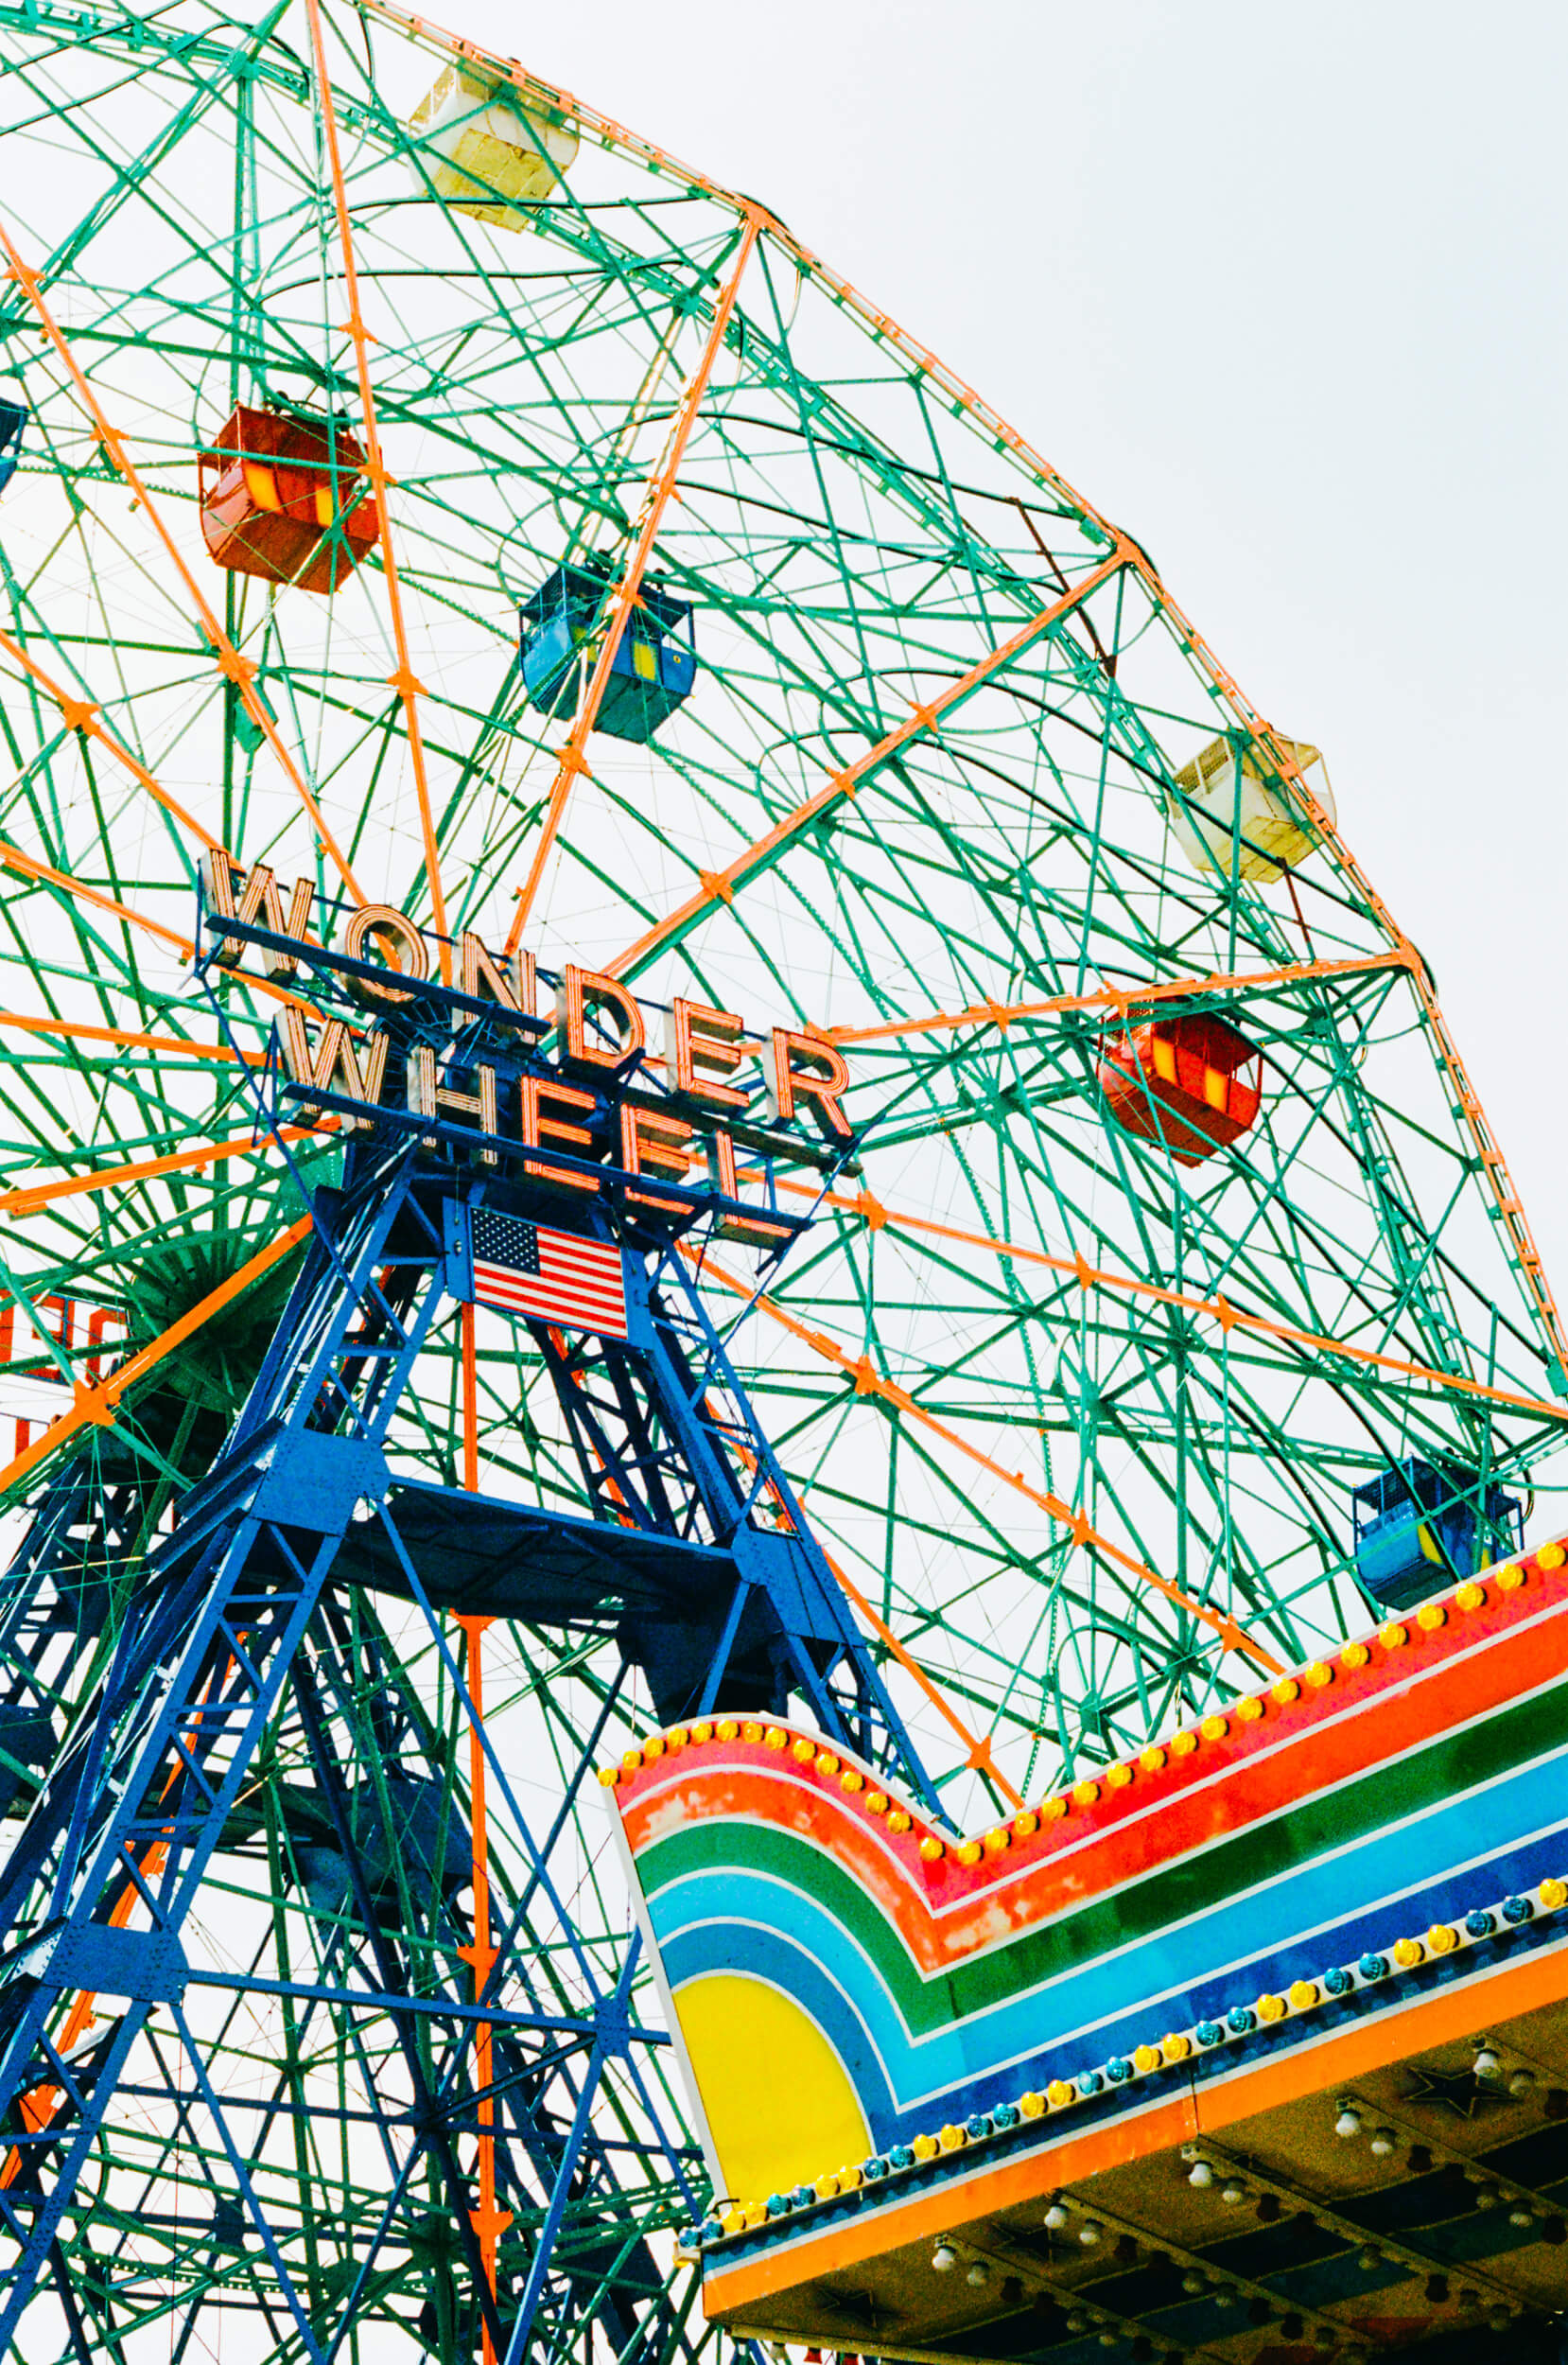 jm-saponaro-wonder-wheel-coney-island.jpg